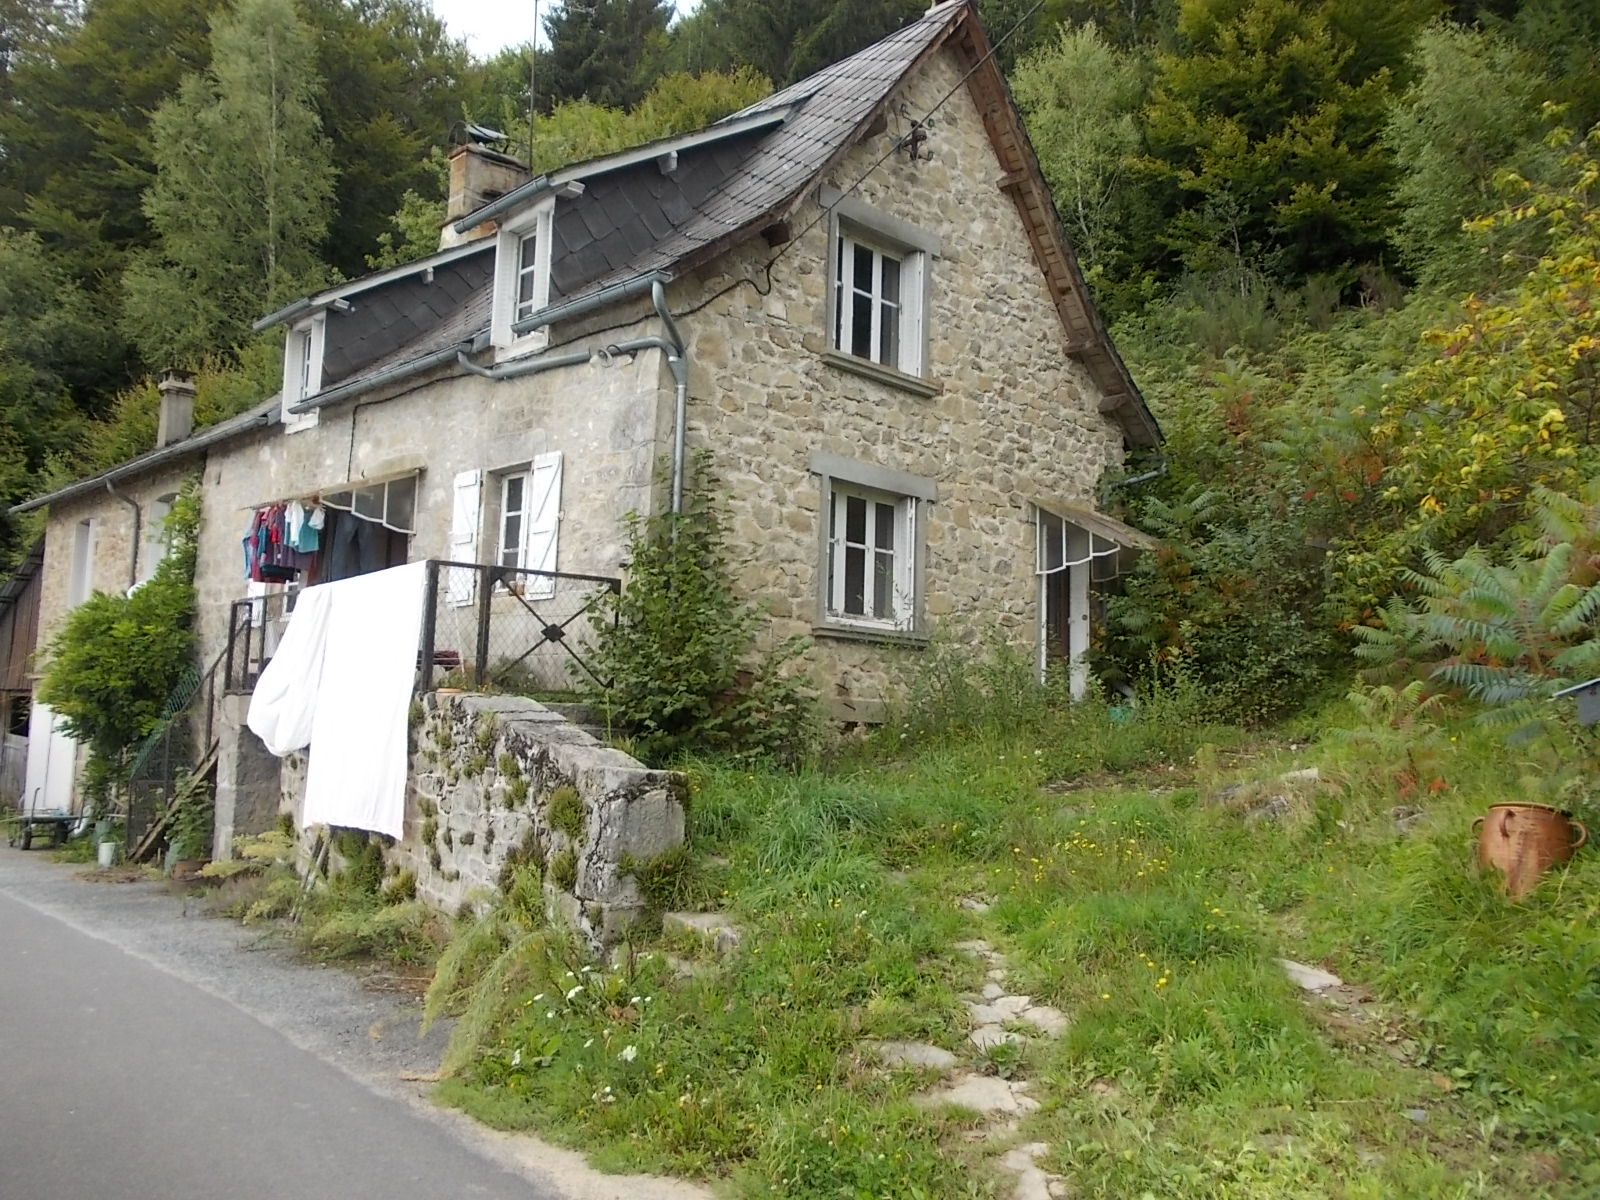 Immobilier lamazi re basse 19 annonces immobili res lamazi re basse - Location maison correze ...